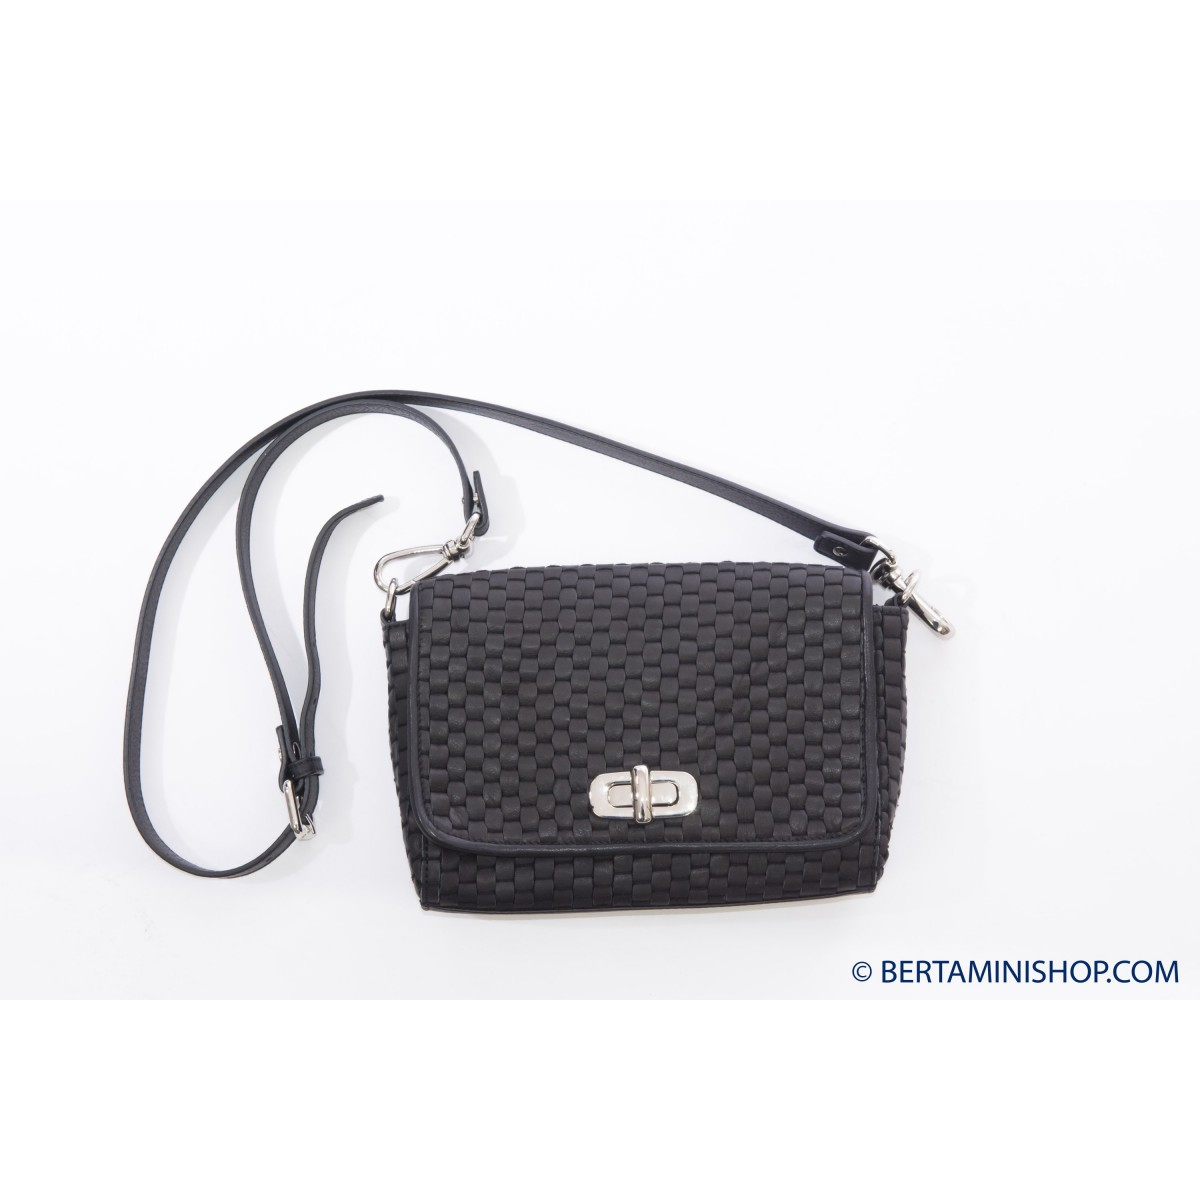 Borsa Bruno Parise Italia - Billie NERO